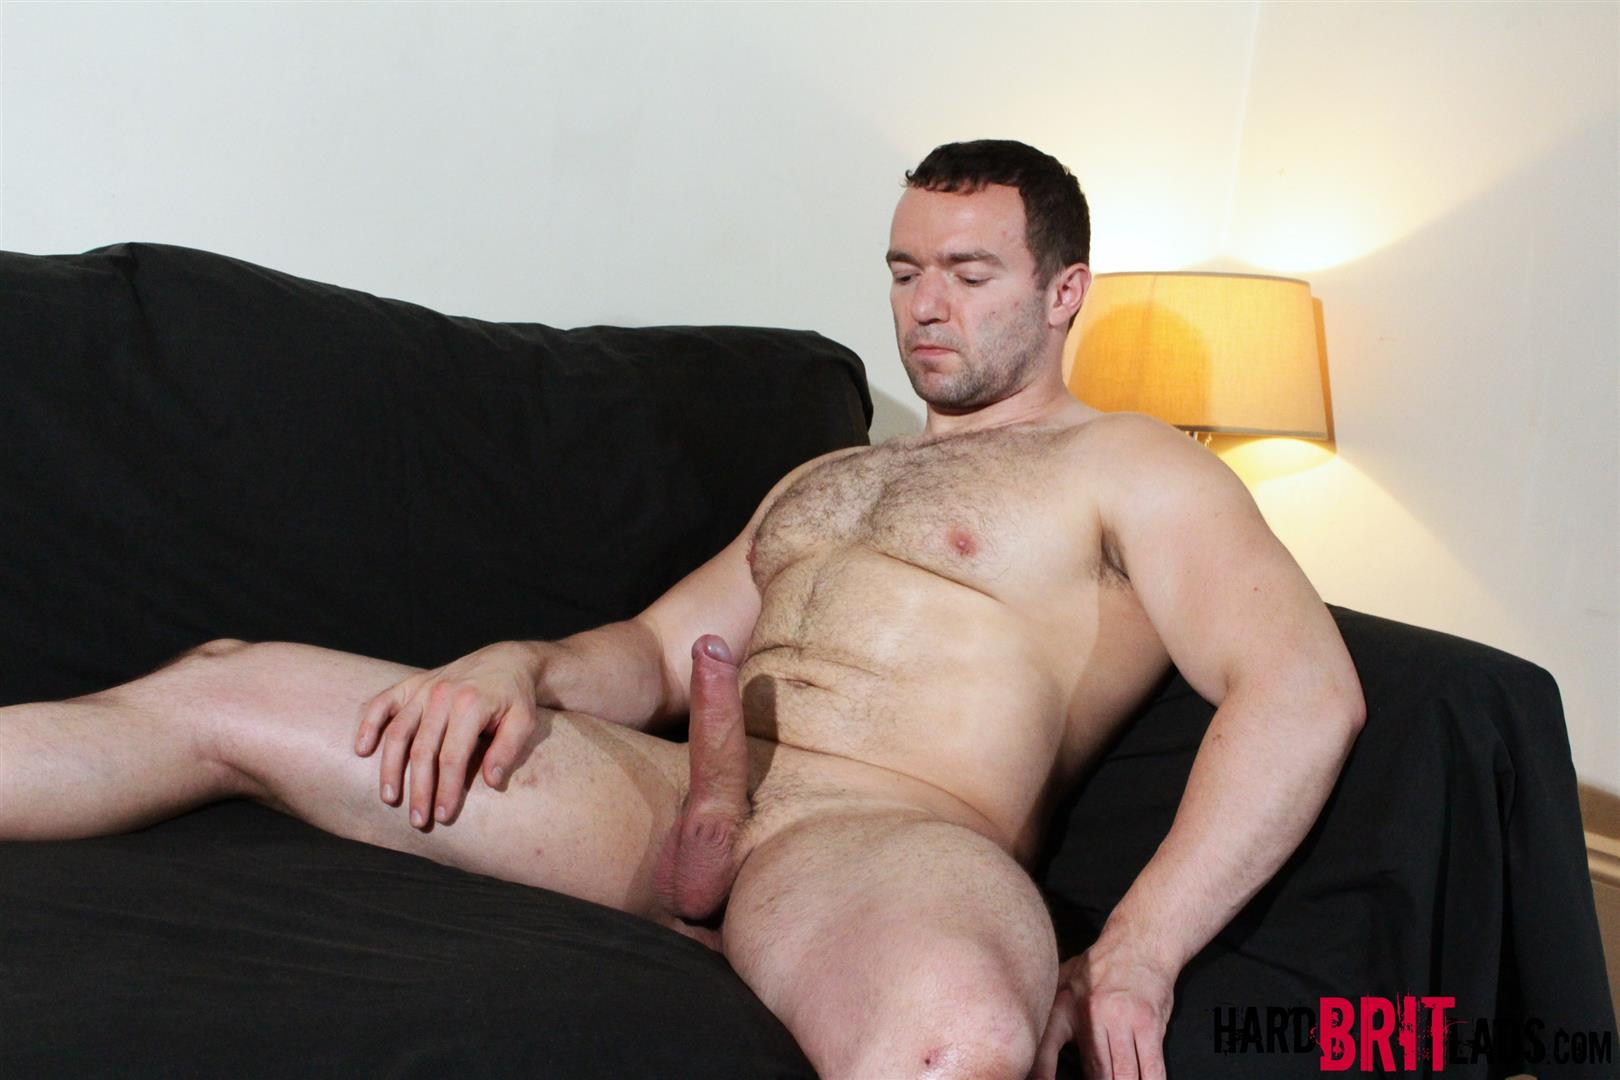 Hard-Brit-Lads-Tom-Strong-Muscular-Rugby-Player-Jerking-His-Big-Uncut-Cock-Amateur-Gay-Porn-13 Beefy Powerlifter Rugby Player Jerking Off His Big Uncut Cock